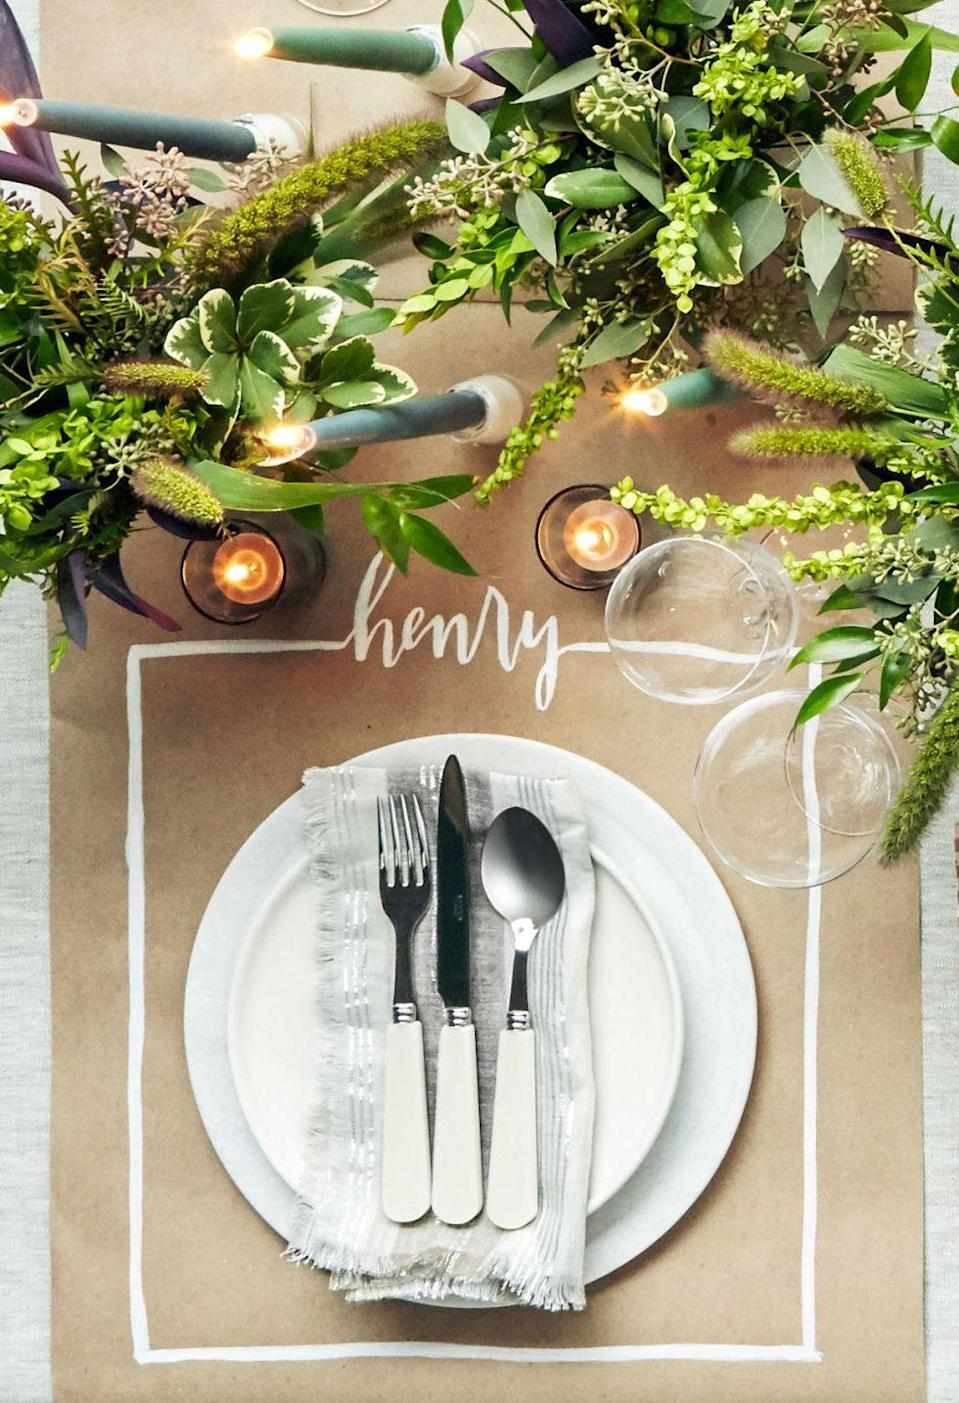 "<p>When it comes to place cards, there's no need to feel restricted by a tiny cardboard rectangle. Here, a table runner and a bit of <a href=""https://www.amazon.com/Testors-Enamel-Paint-Marker-Gloss-White/dp/B008CVNY34?tag=syn-yahoo-20&ascsubtag=%5Bartid%7C10050.g.1538%5Bsrc%7Cyahoo-us"" rel=""nofollow noopener"" target=""_blank"" data-ylk=""slk:white paint"" class=""link rapid-noclick-resp"">white paint</a> create a ""place mat"" that'll have everyone talking.</p><p><strong>Make the place mat: </strong>Cut an 18-inch-wide piece of kraft paper to desired runner length. In pencil, lightly draw three sides of a 16-inch square, leaving the top side open. Write the guest's name in the center of the open space, extending the lines on either side of the name to complete the square. Trace over the pencil lines with a white paint marker.</p><p><strong><a class=""link rapid-noclick-resp"" href=""https://www.amazon.com/Testors-Enamel-Paint-Marker-Gloss-White/dp/B008CVNY34?tag=syn-yahoo-20&ascsubtag=%5Bartid%7C10050.g.1538%5Bsrc%7Cyahoo-us"" rel=""nofollow noopener"" target=""_blank"" data-ylk=""slk:SHOP PAINT MARKER"">SHOP PAINT MARKER</a></strong></p>"